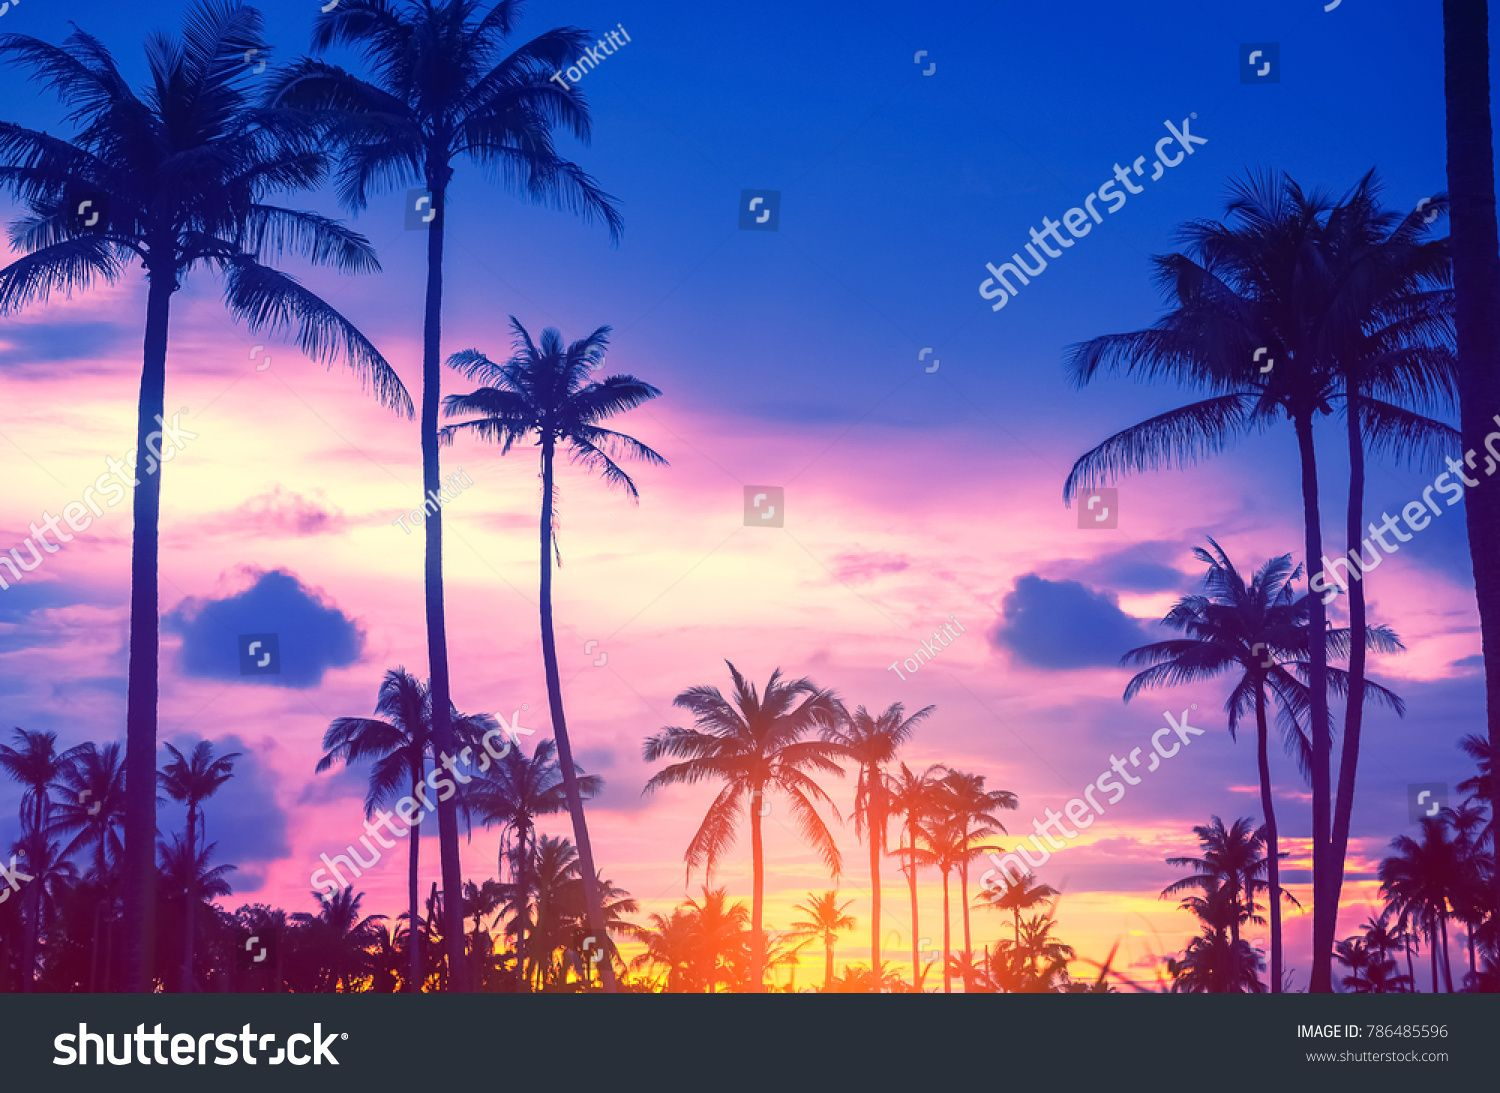 Copy Space Of Silhouette Tropical Palm Tree With Sun Light On Sunset Sky And Cloud Abstract Backgro Abstract Backgrounds Nature Travel Adventure Sky And Clouds Tropics palm trees sunset clouds sky